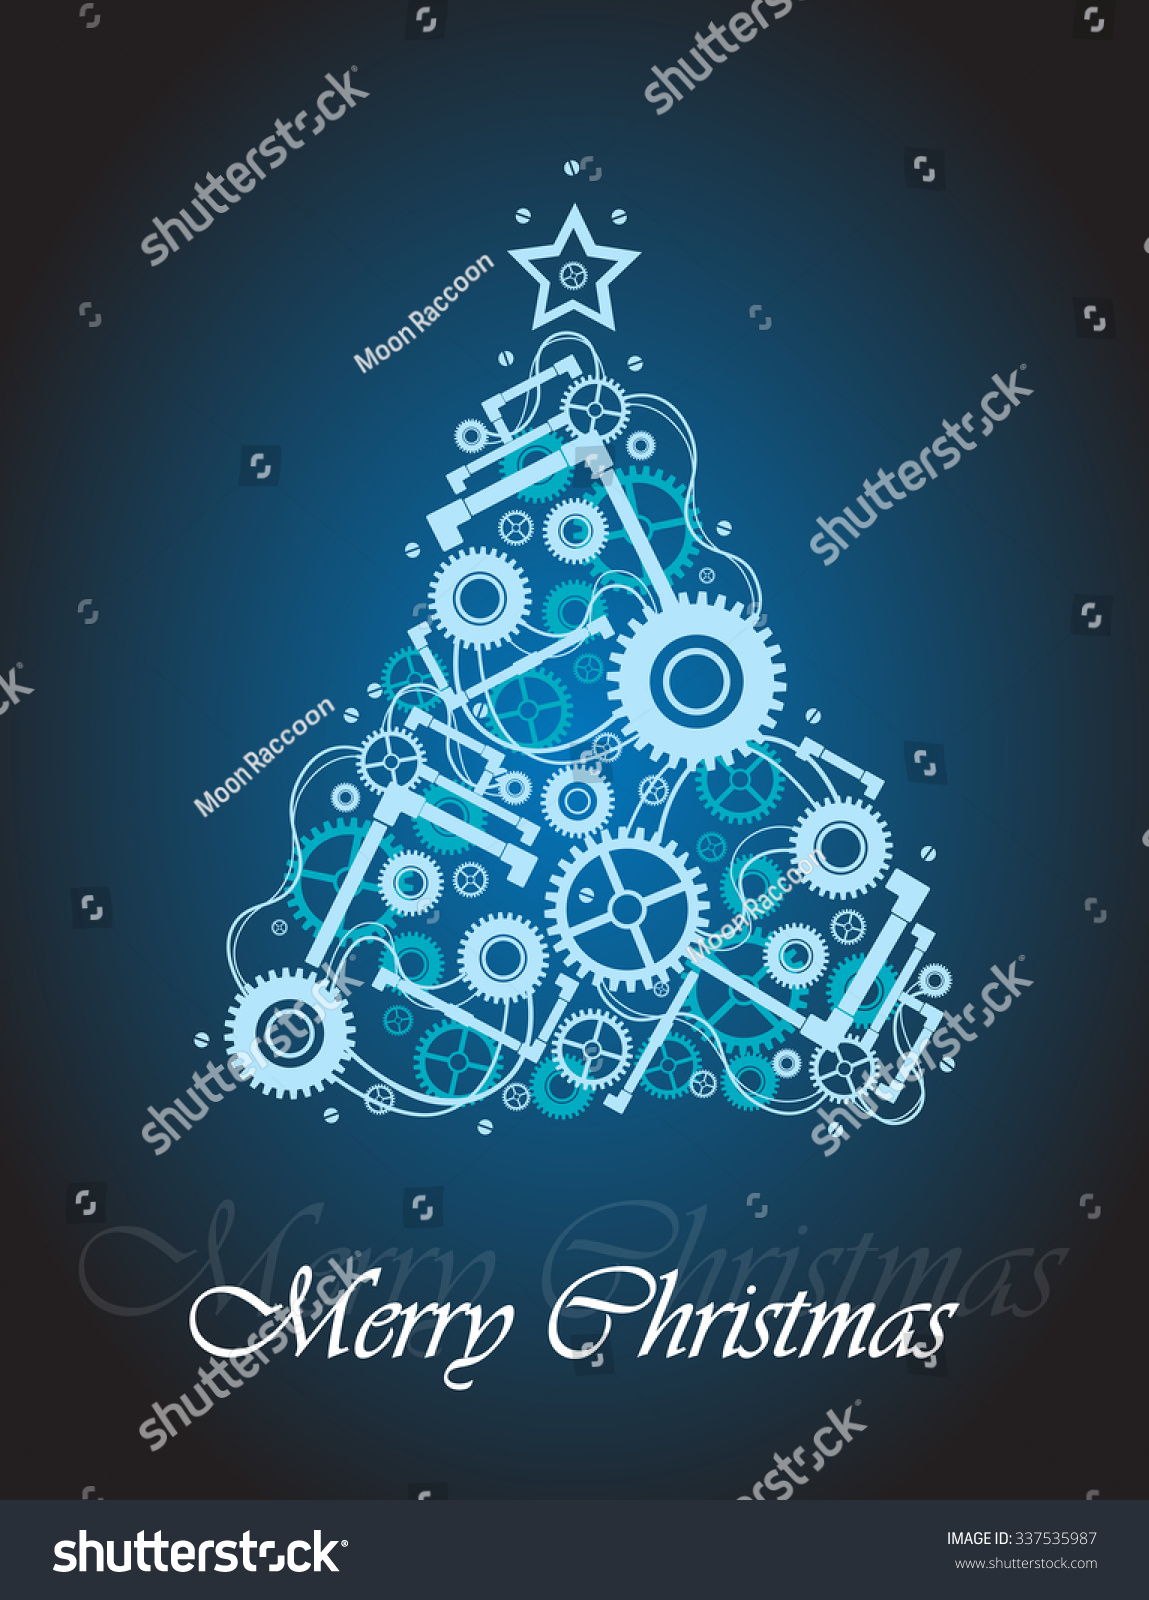 Vector christmas greeting card xmas tree stock vector royalty free vector christmas greeting card with xmas tree made of cogwheels bolts tubes and other m4hsunfo